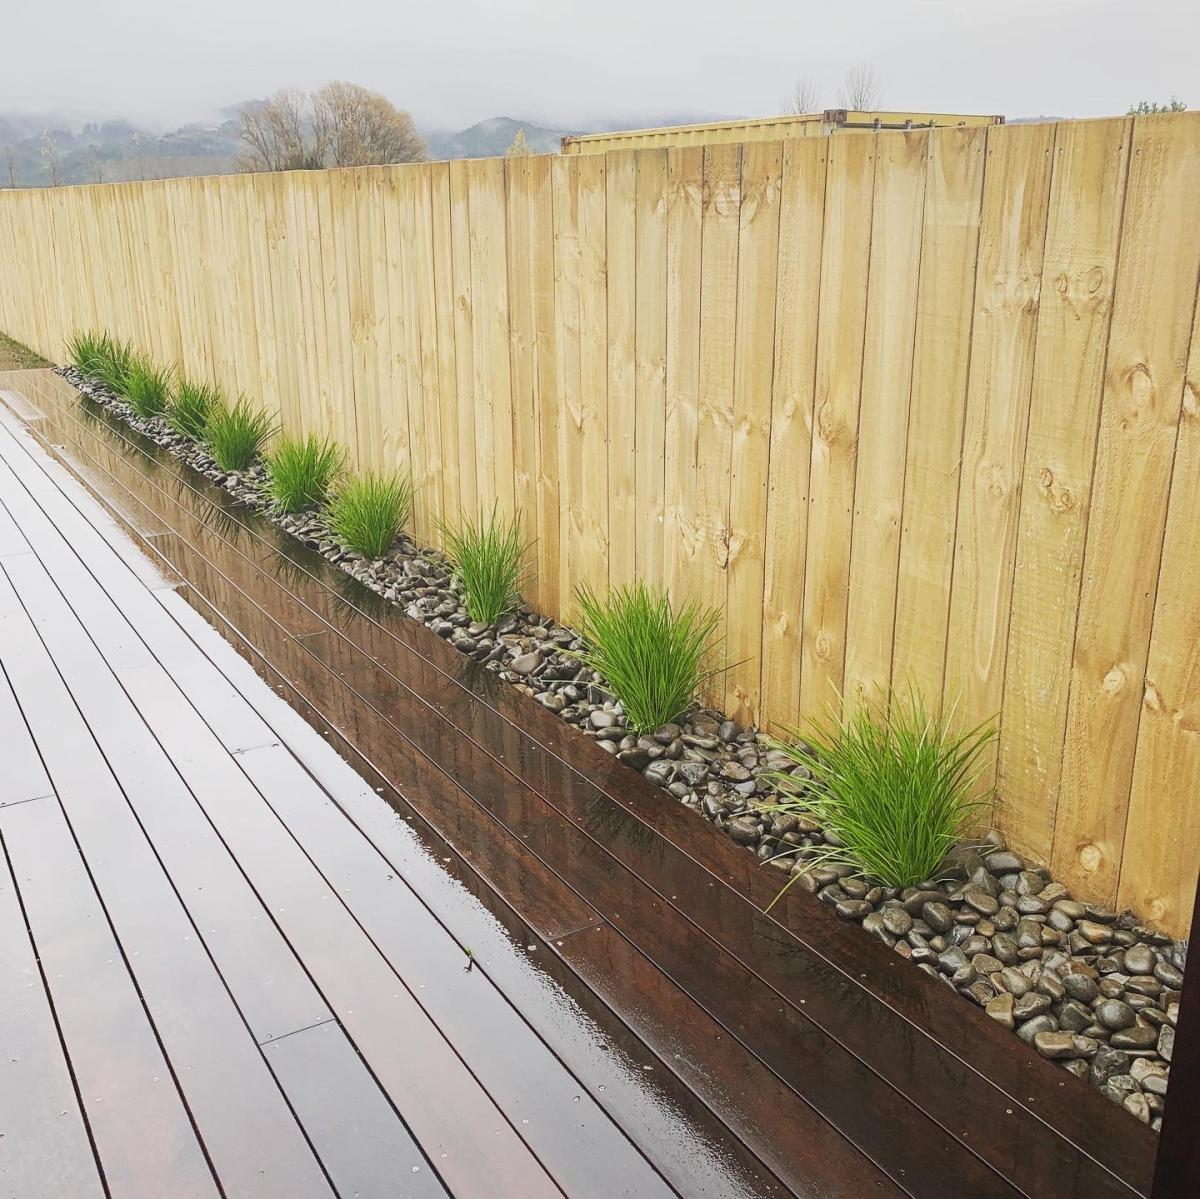 Kupe house fence, deck and landscaping